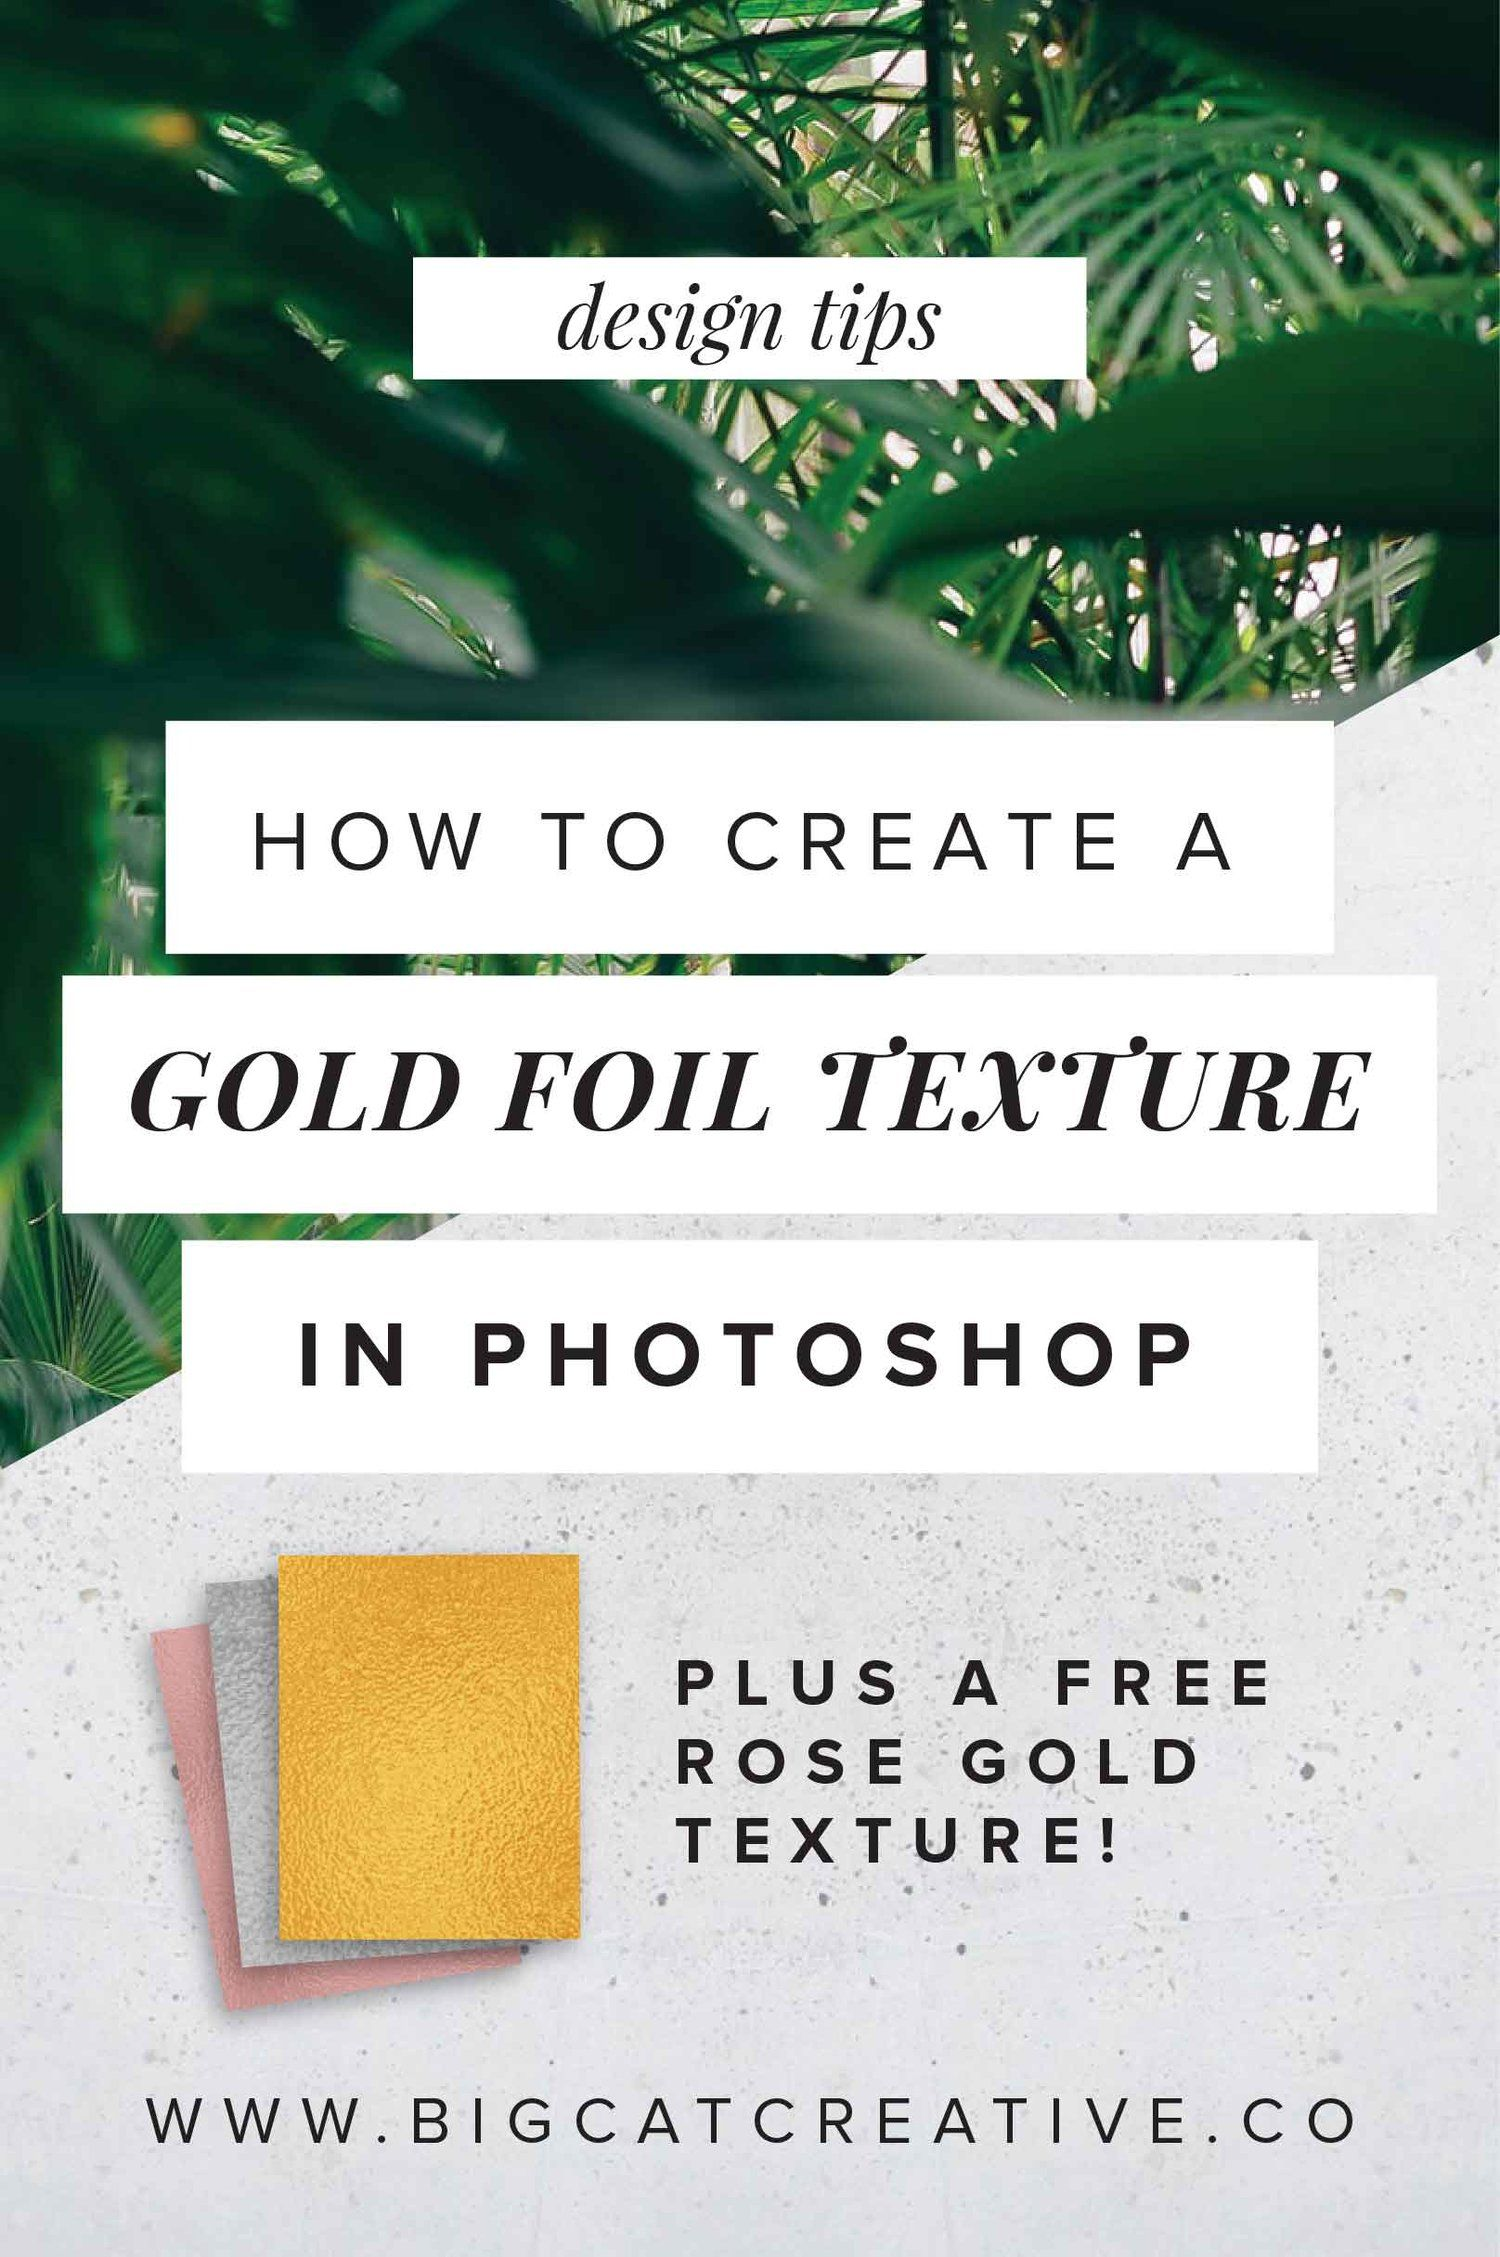 How to create a gold foil texture in photoshop big cat creative how to create a gold foil texture in photoshop big cat creative branding and baditri Images